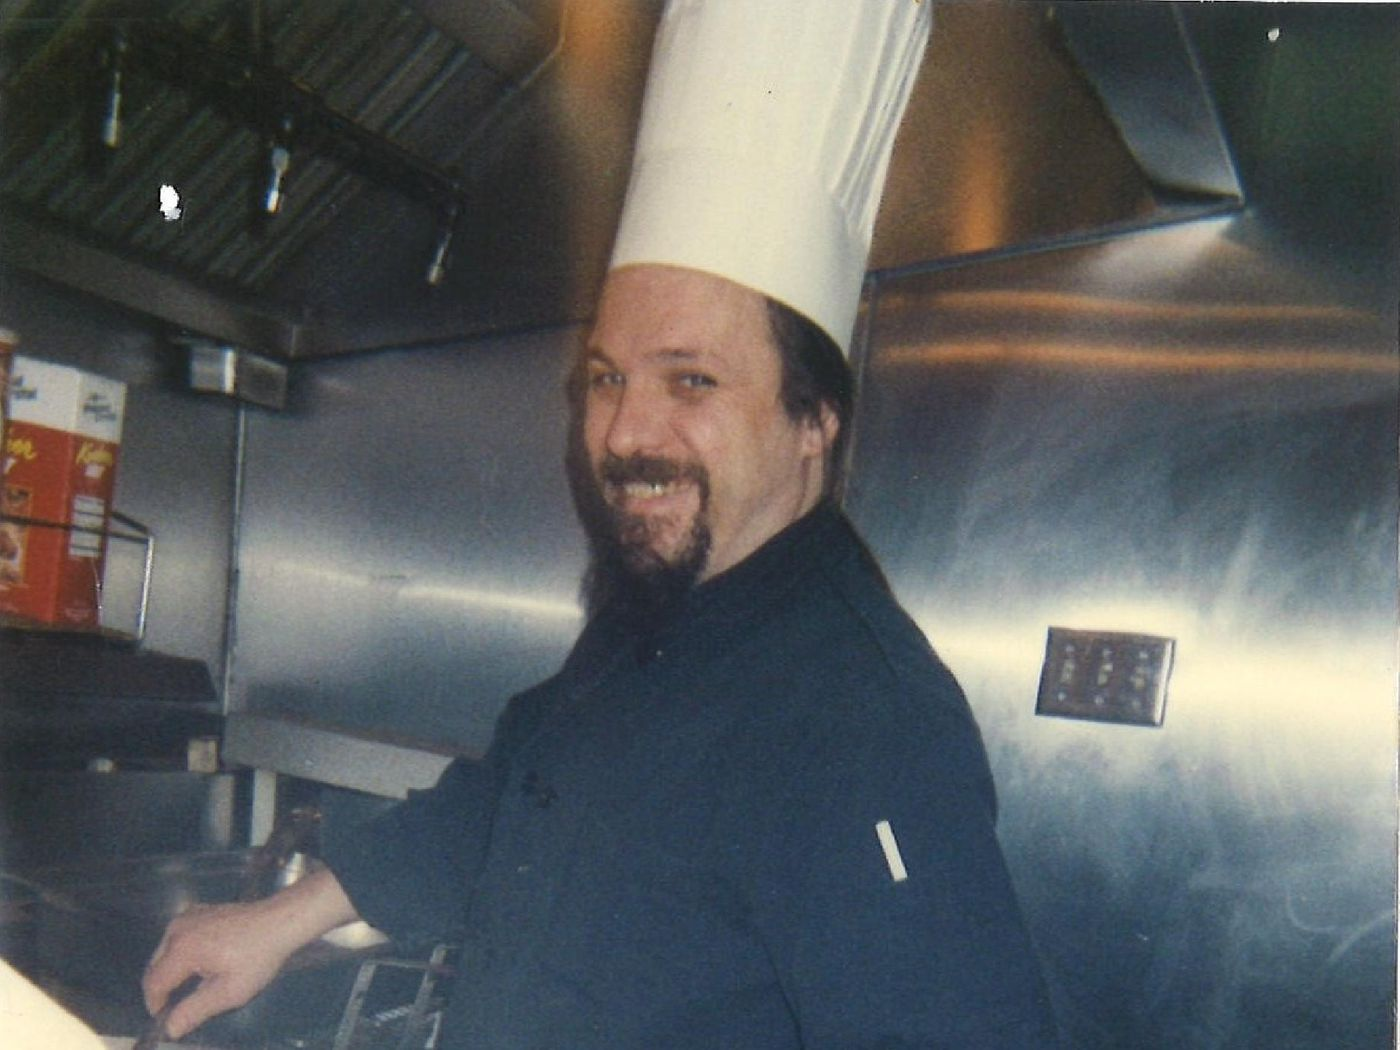 Gregory Longenecker worked as a short-order cook in Berks County.